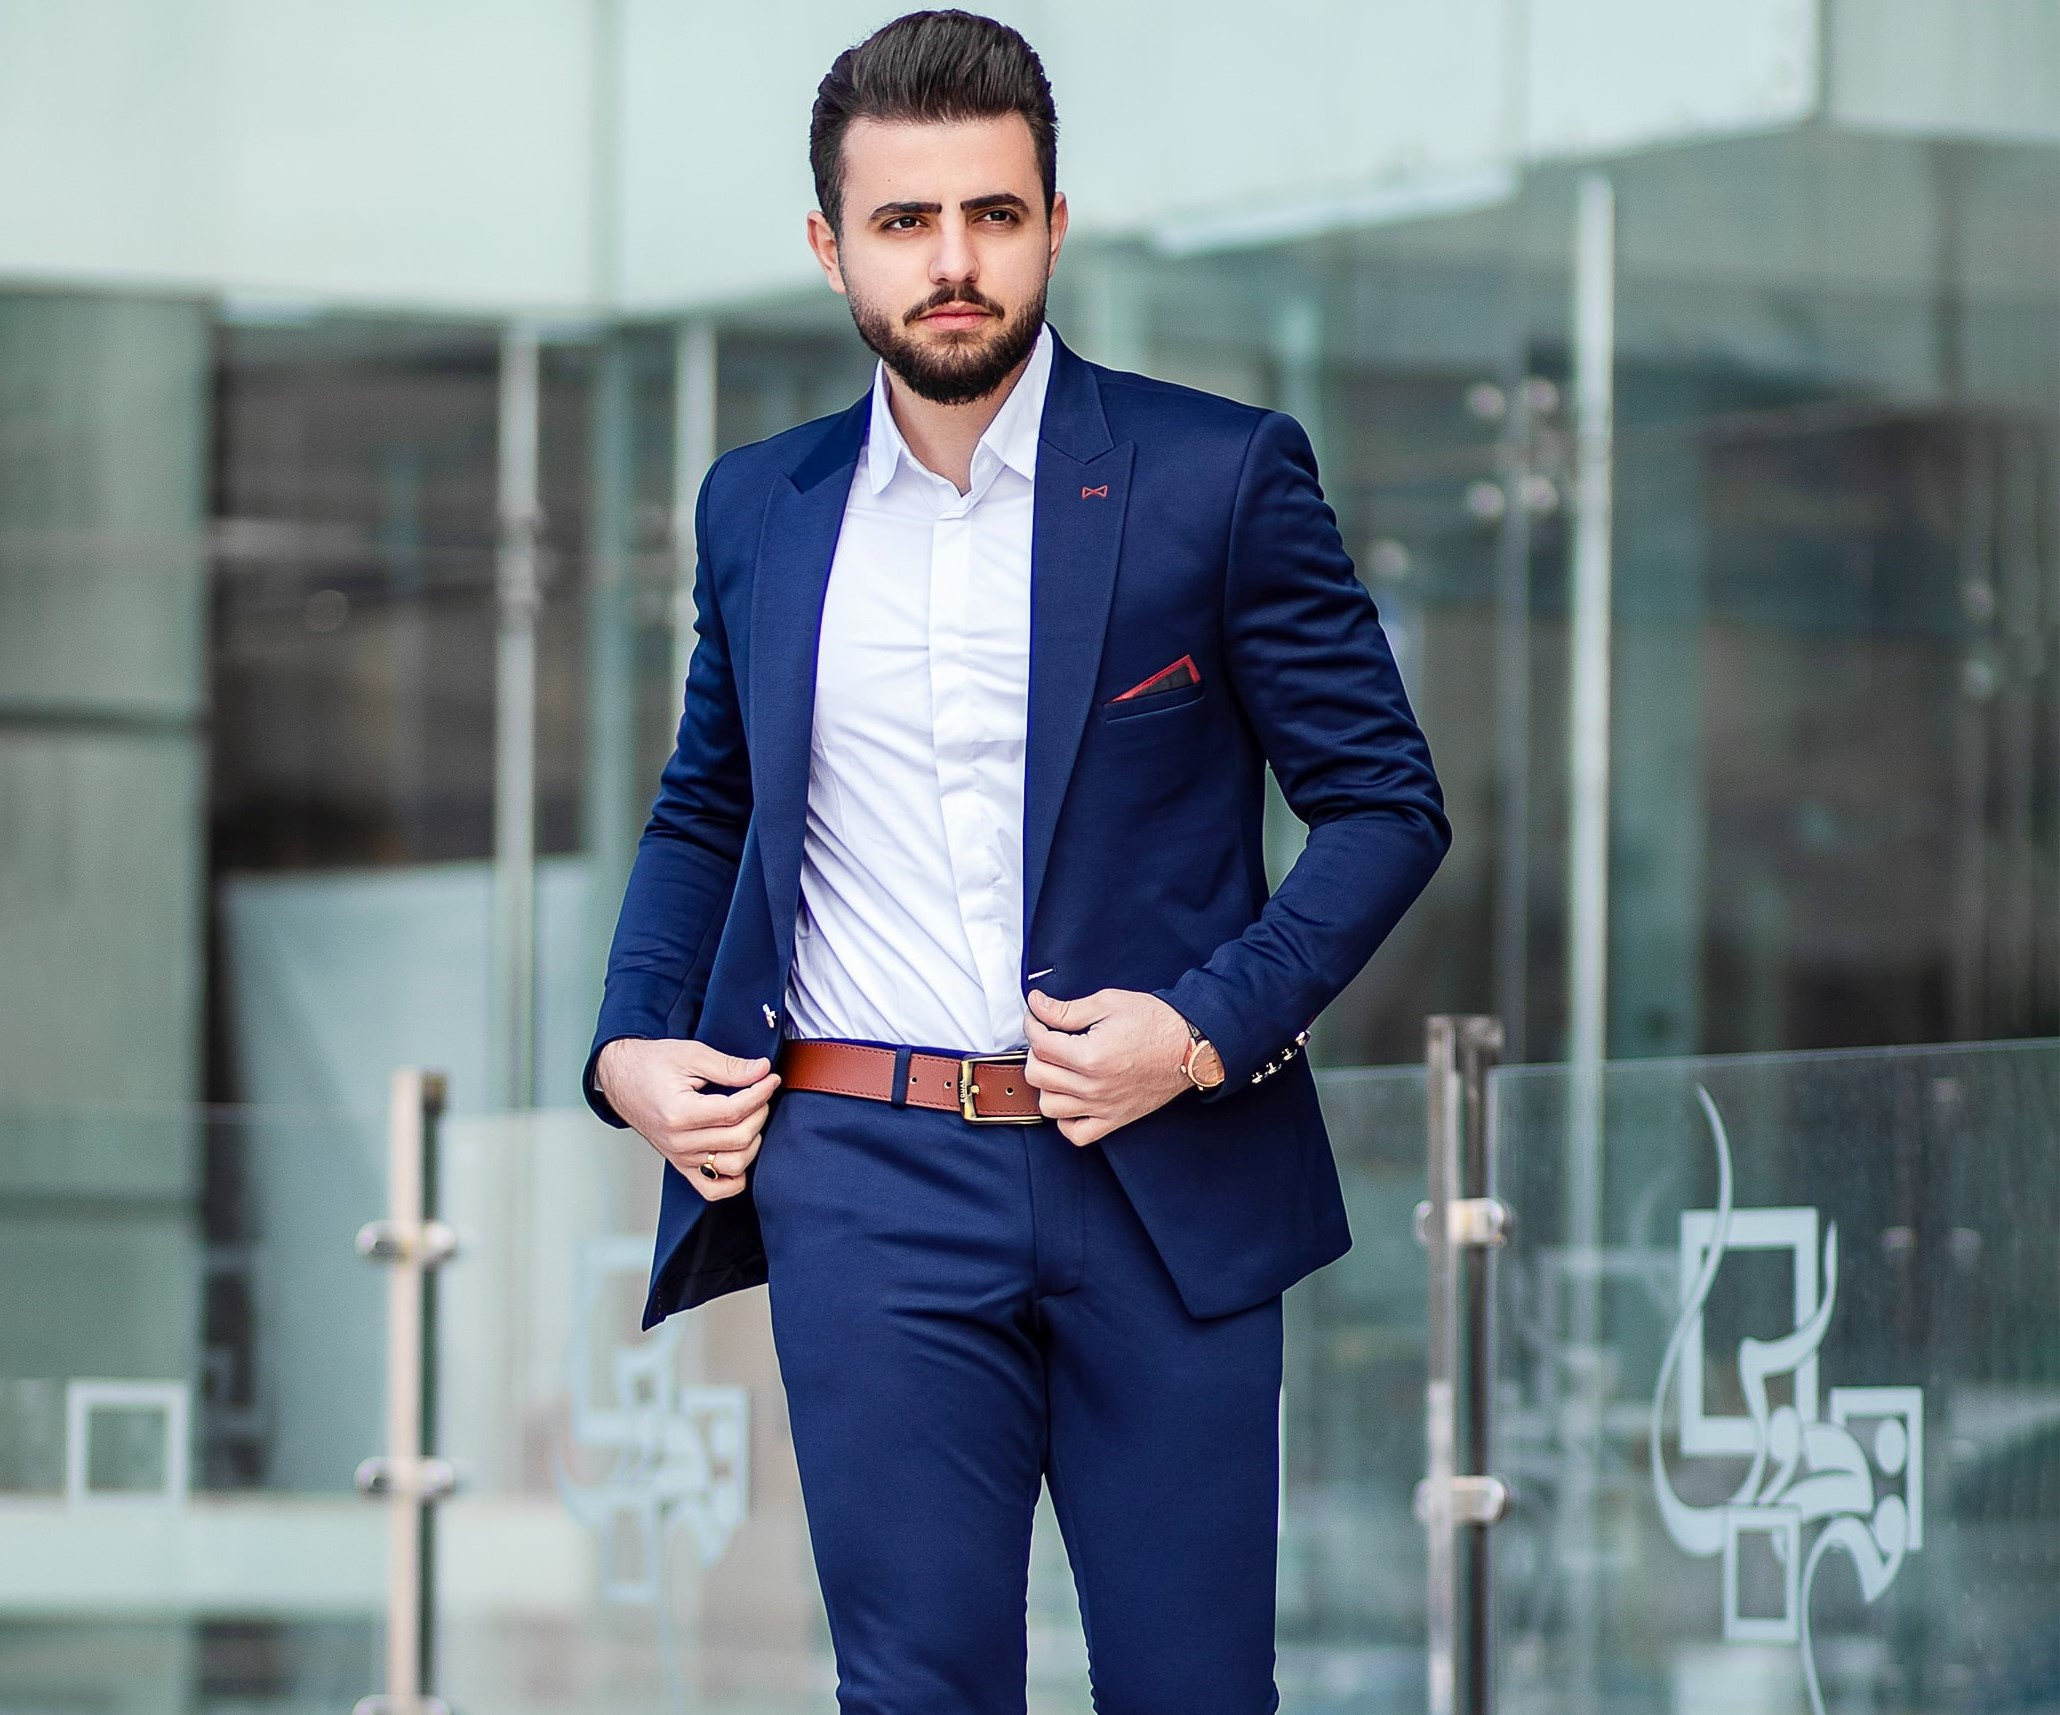 man in blue suit without a tie and brown belt